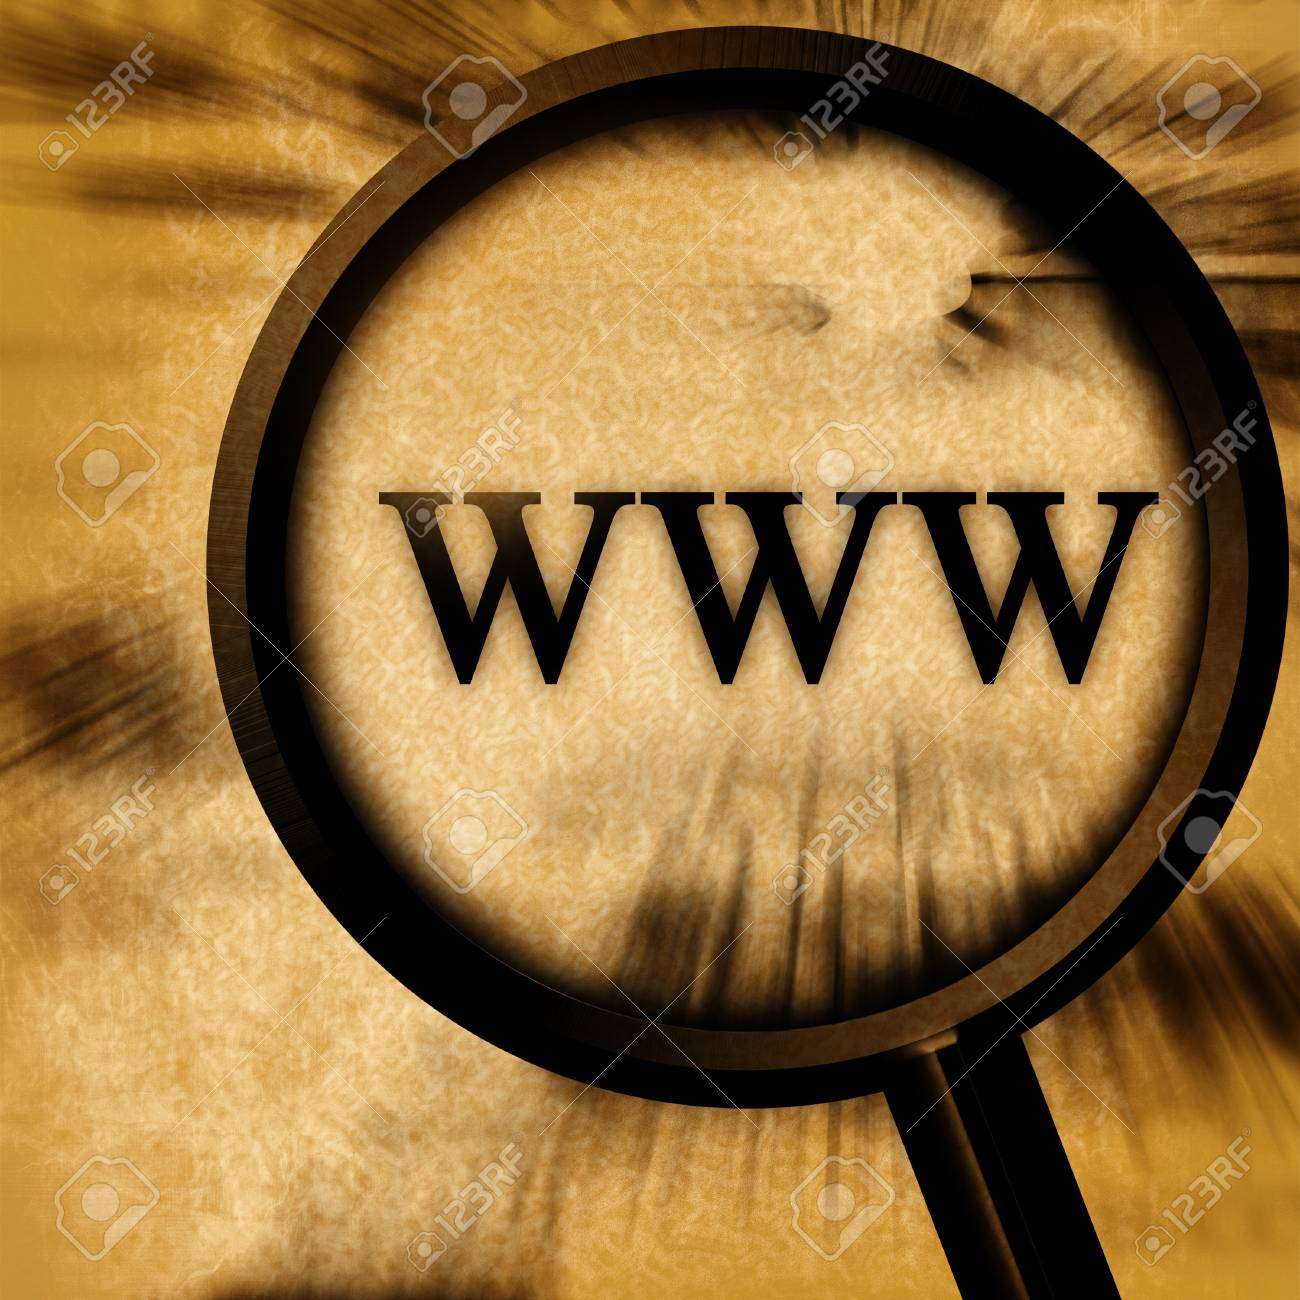 www on a grunge background with a magnifier Stock Photo - 3964600